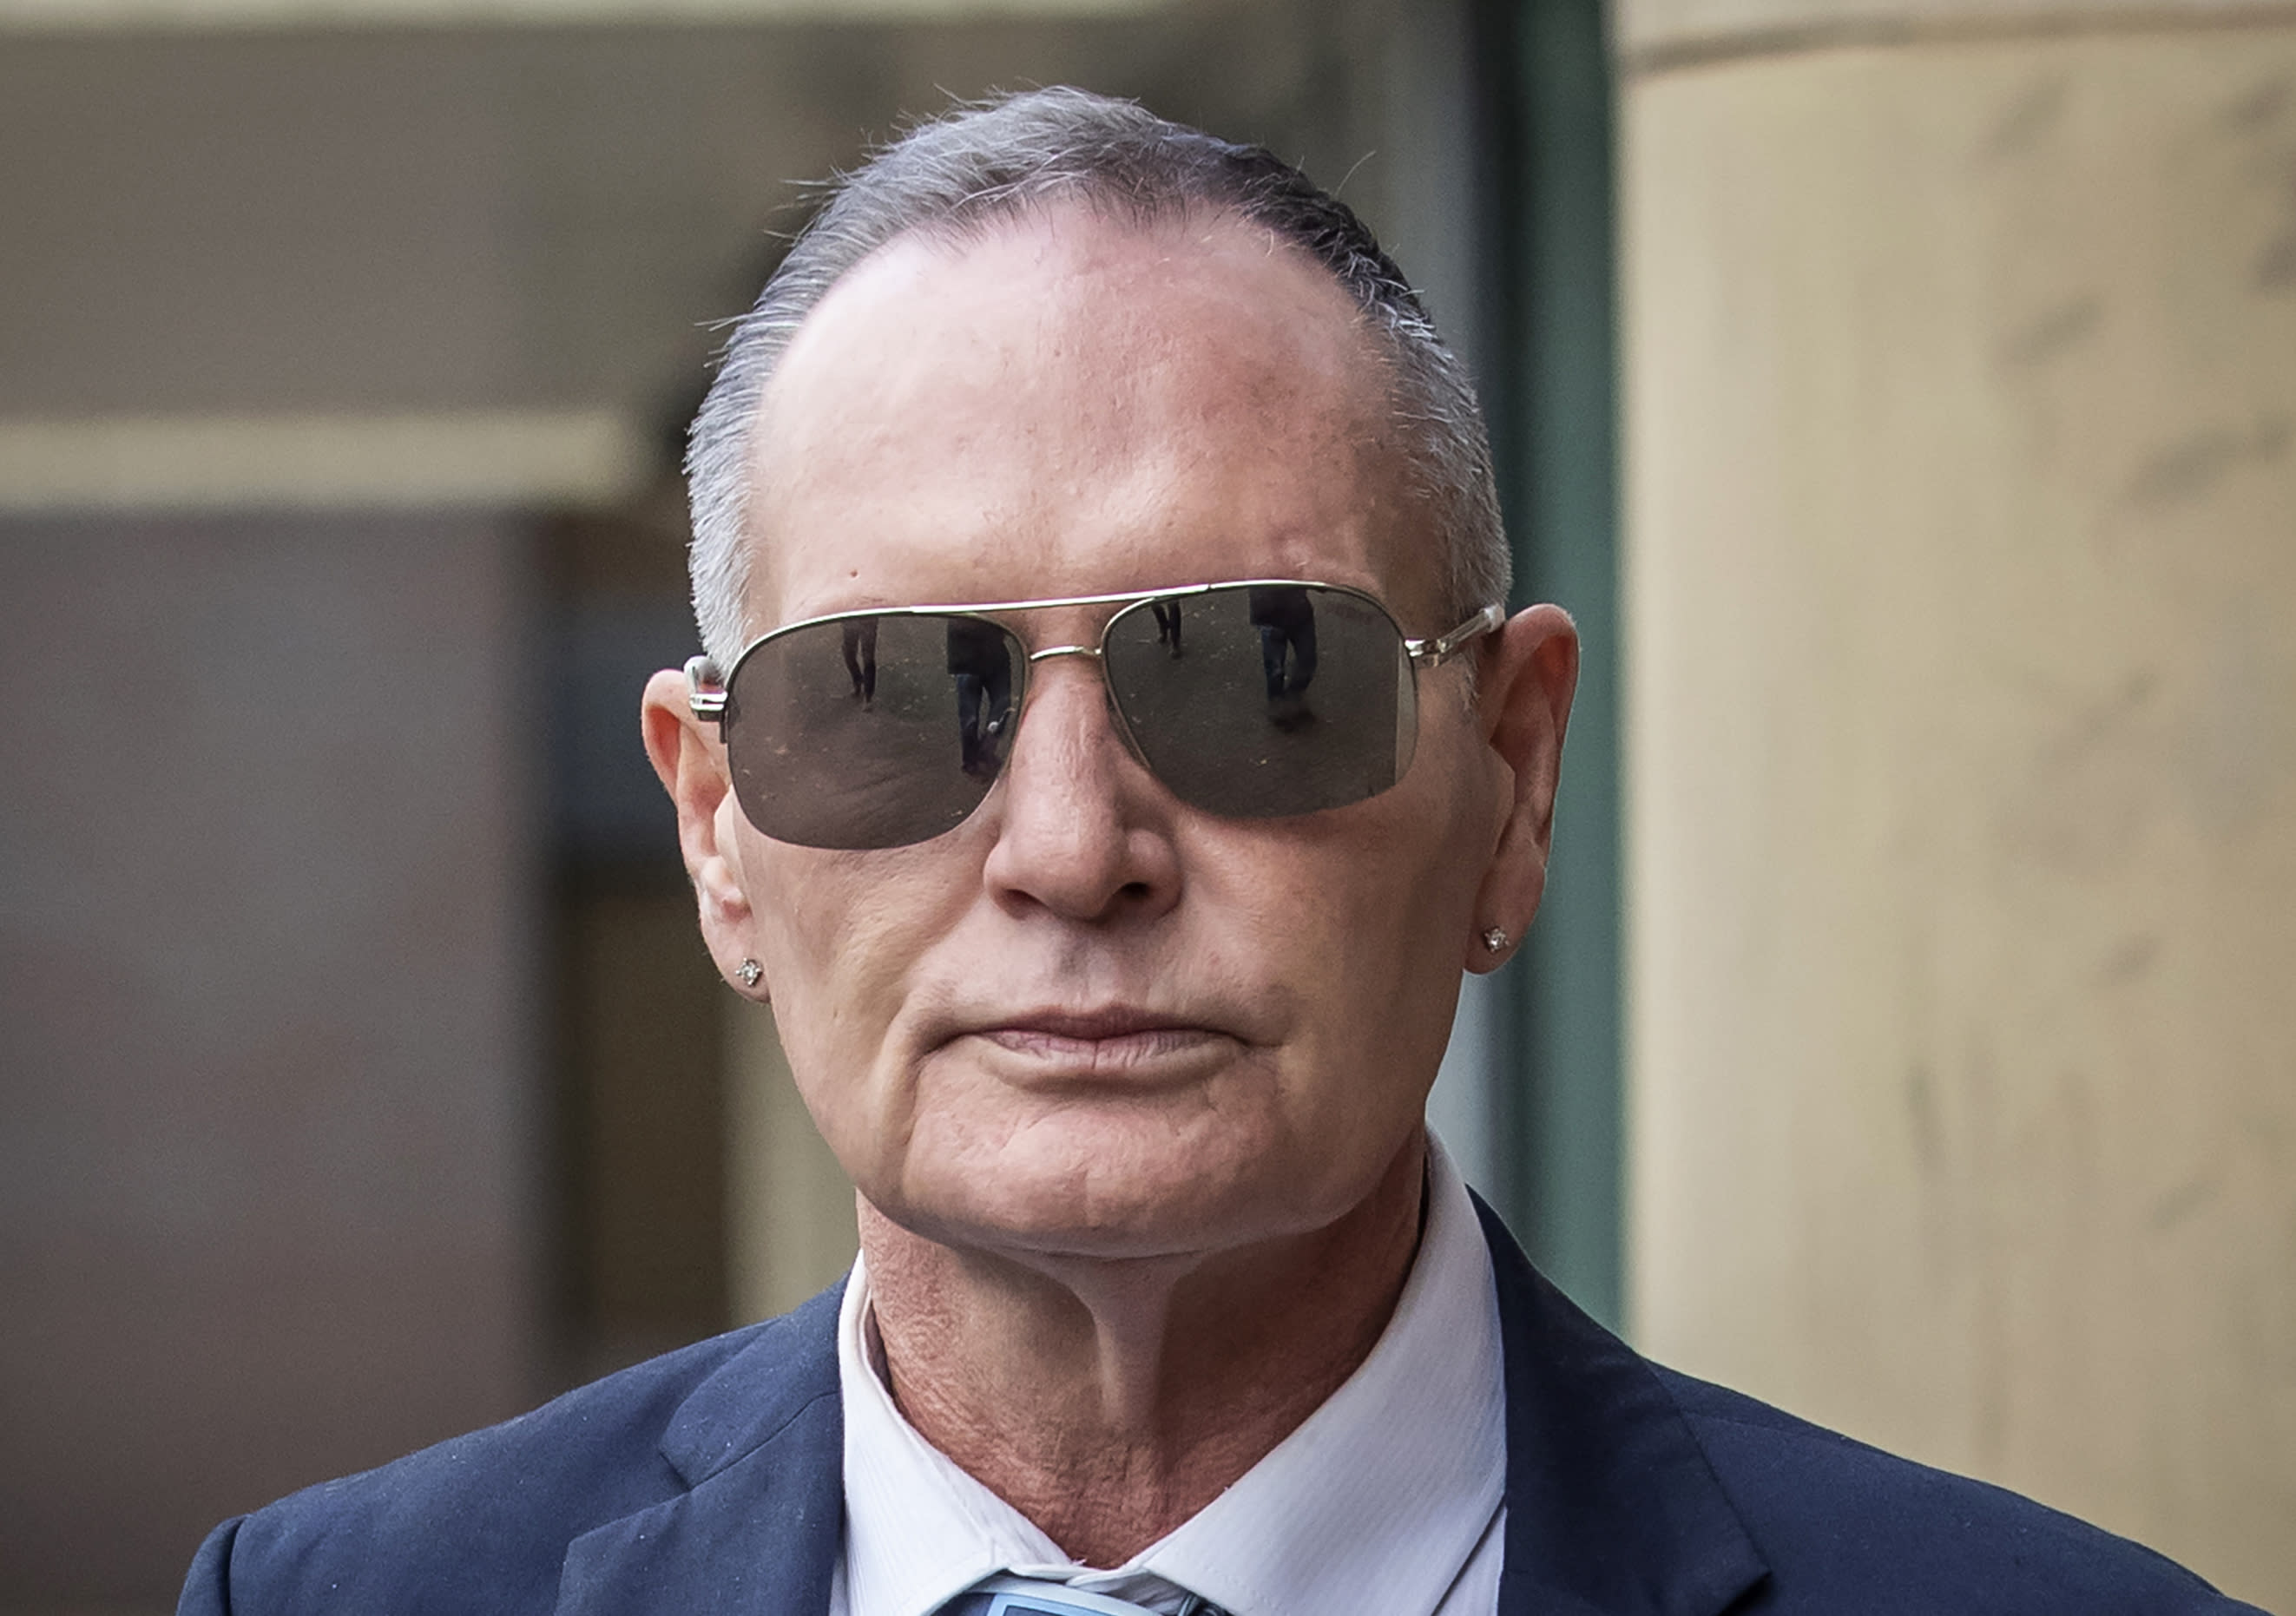 Paul Gascoigne speaks of 'year of hell' after being cleared of sexual assault